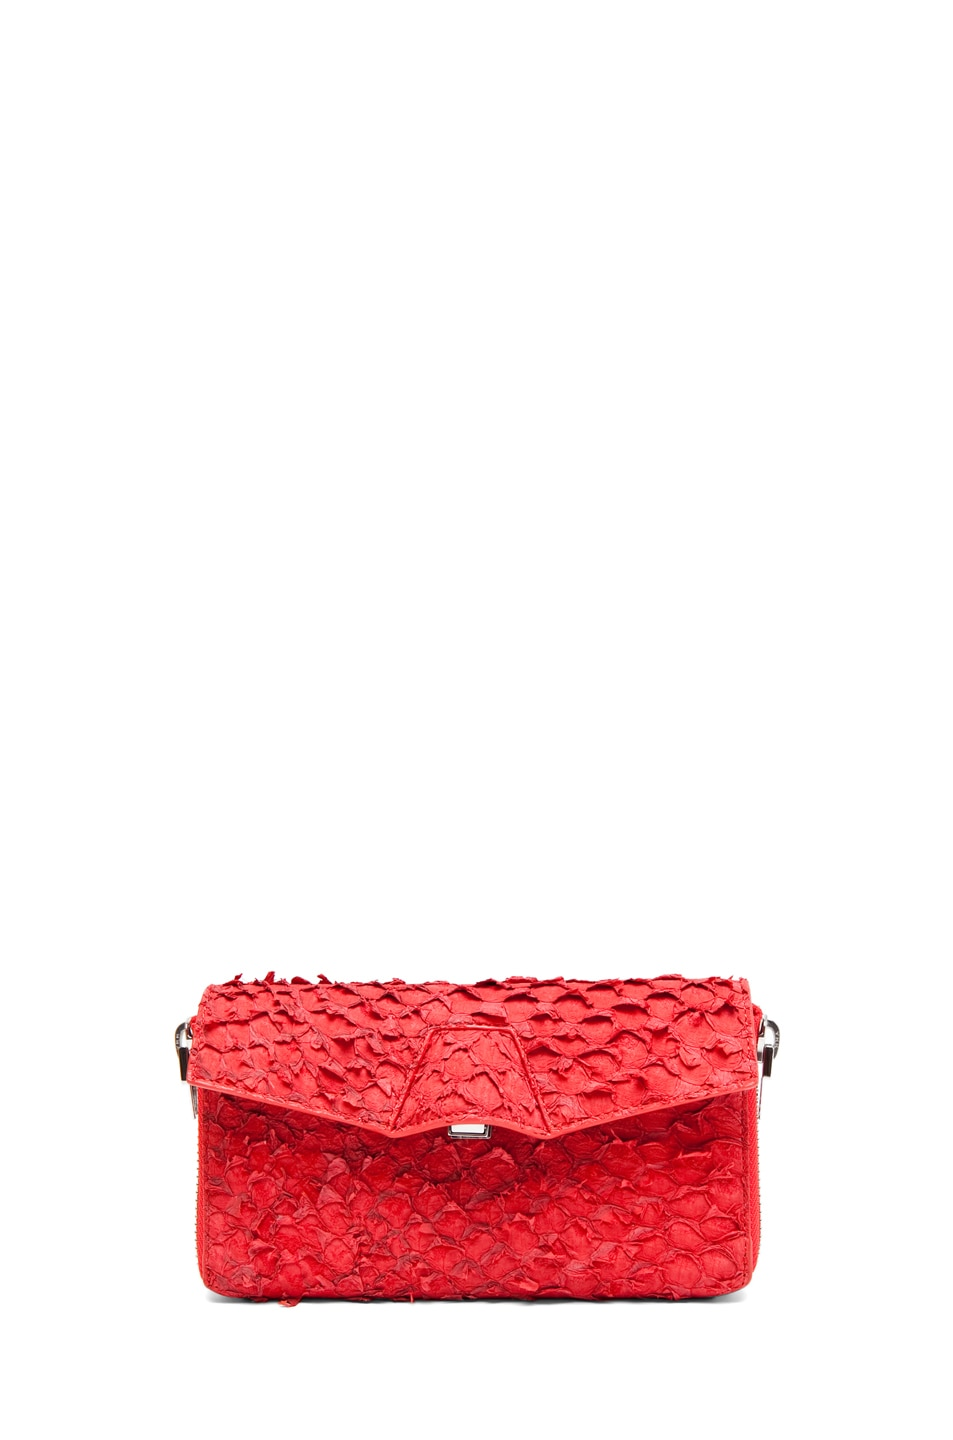 Image 1 of Alexander Wang Quillon Long Compact Perch Wallet in Persimmon